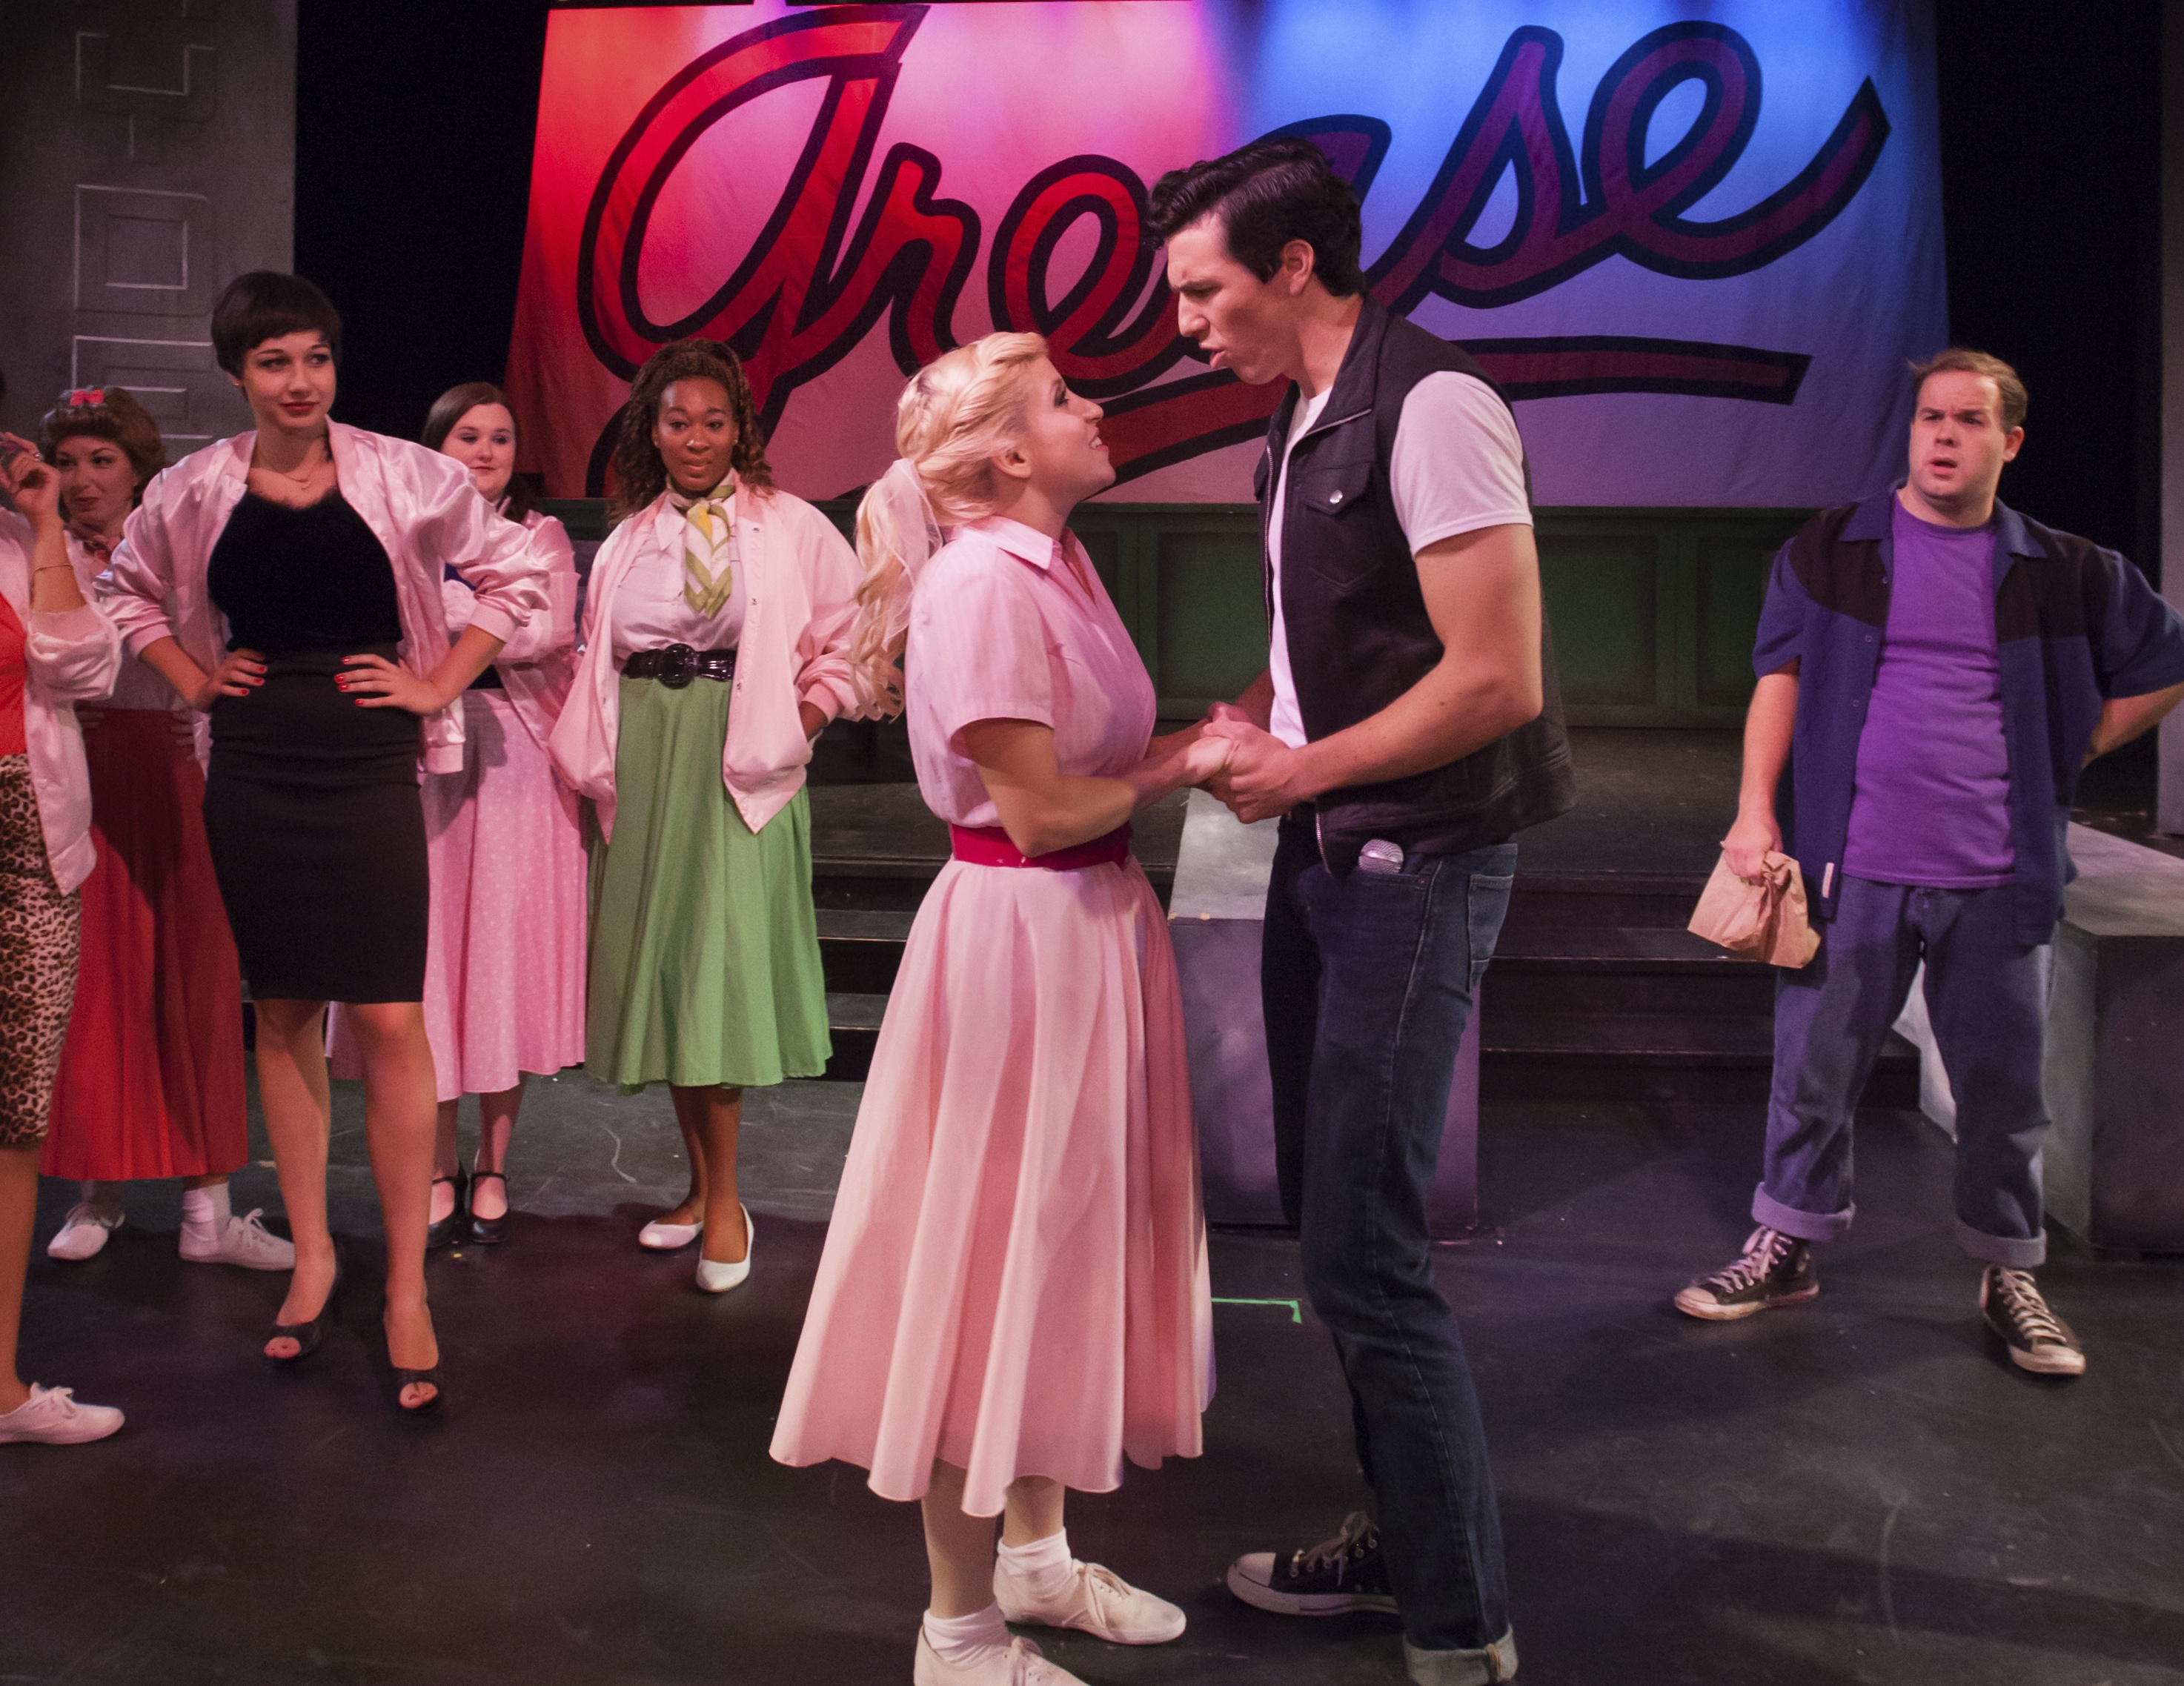 048_Grease_ClearSpaceTheatre_2015